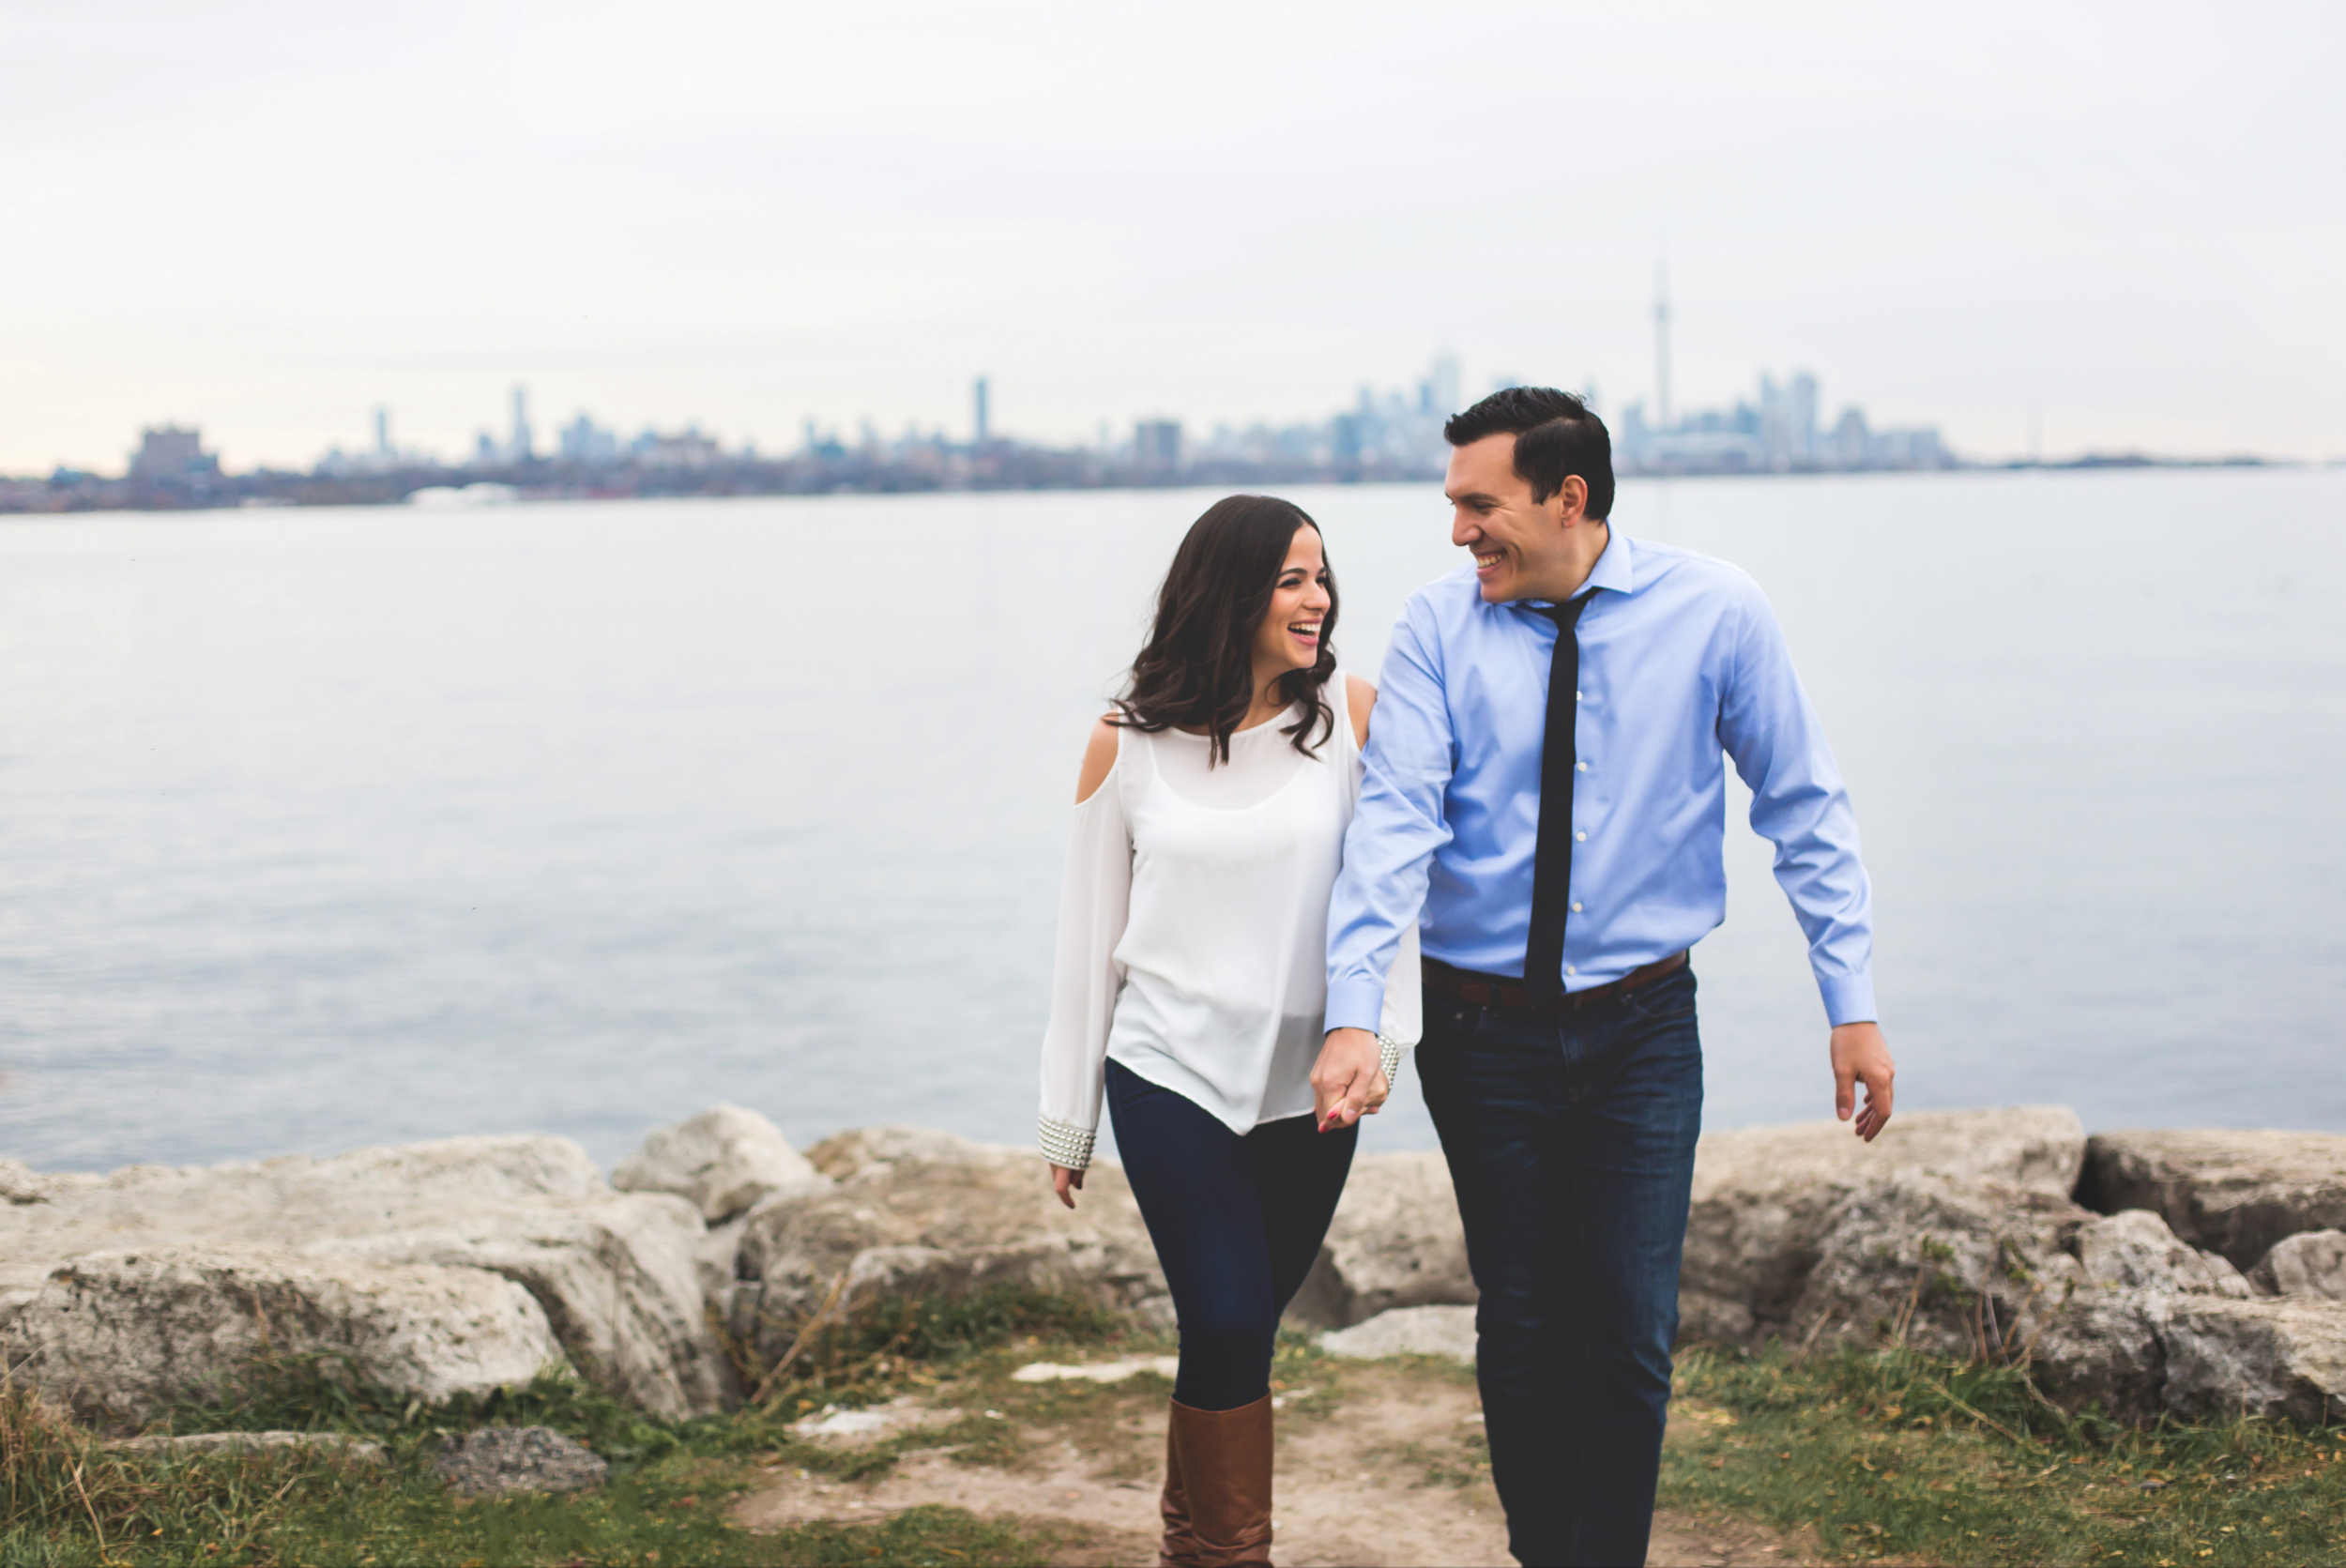 Engagement-Photography-Toronto-Skyline-City-Waterfront-HumberBay-Hamilton-Burlington-Oakville-Niagara-Toronto-Wedding-Photographer-Photo-Image-2.png